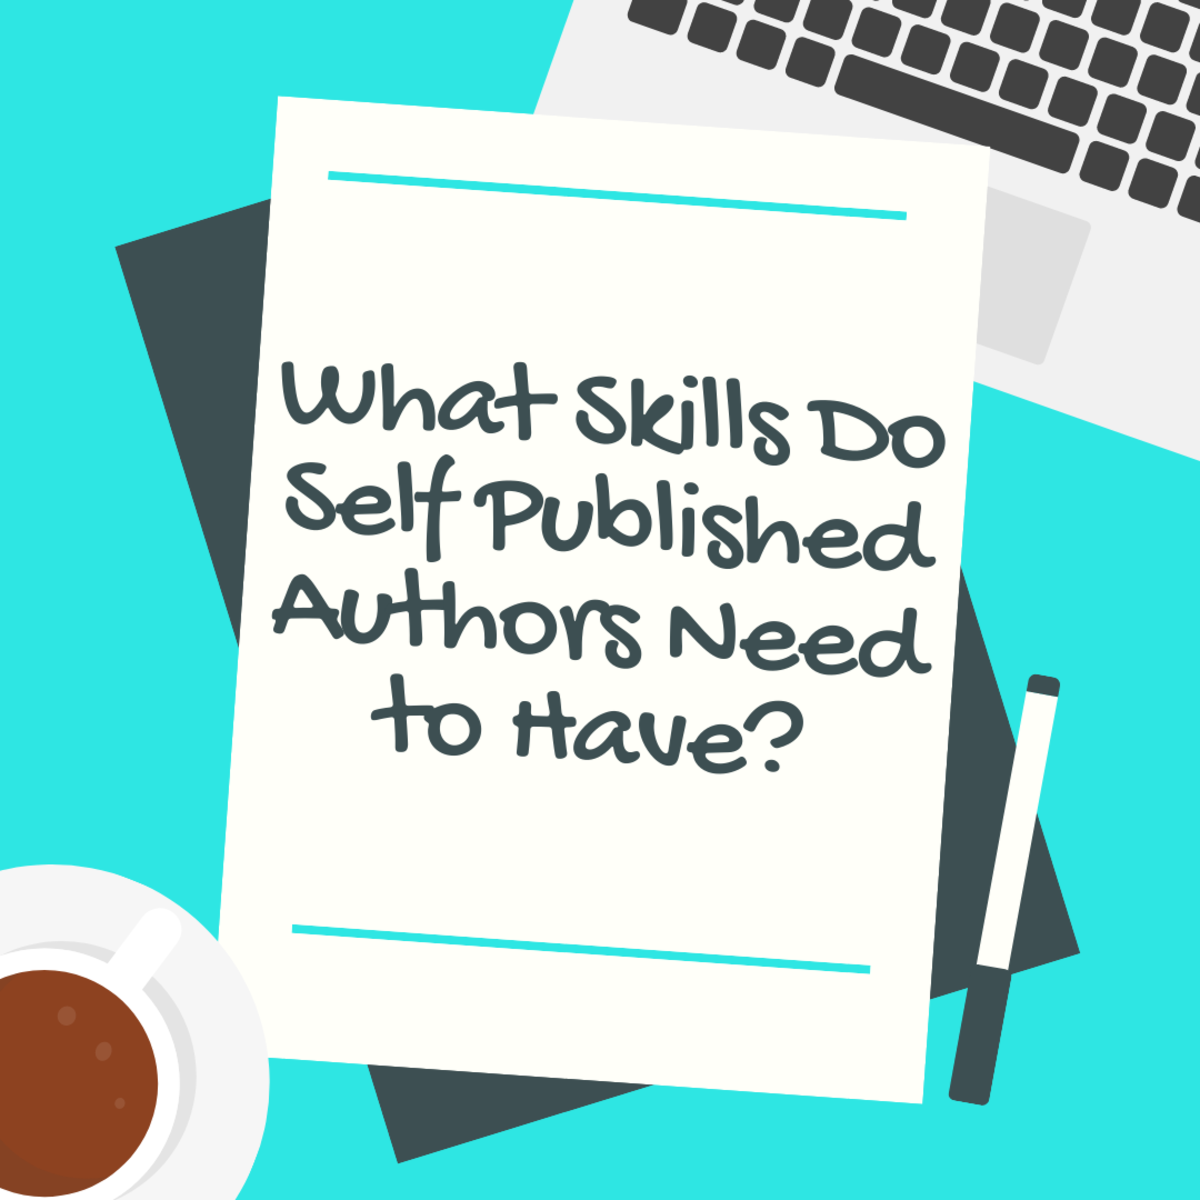 What Skills Do Self Published Authors Need to Have?